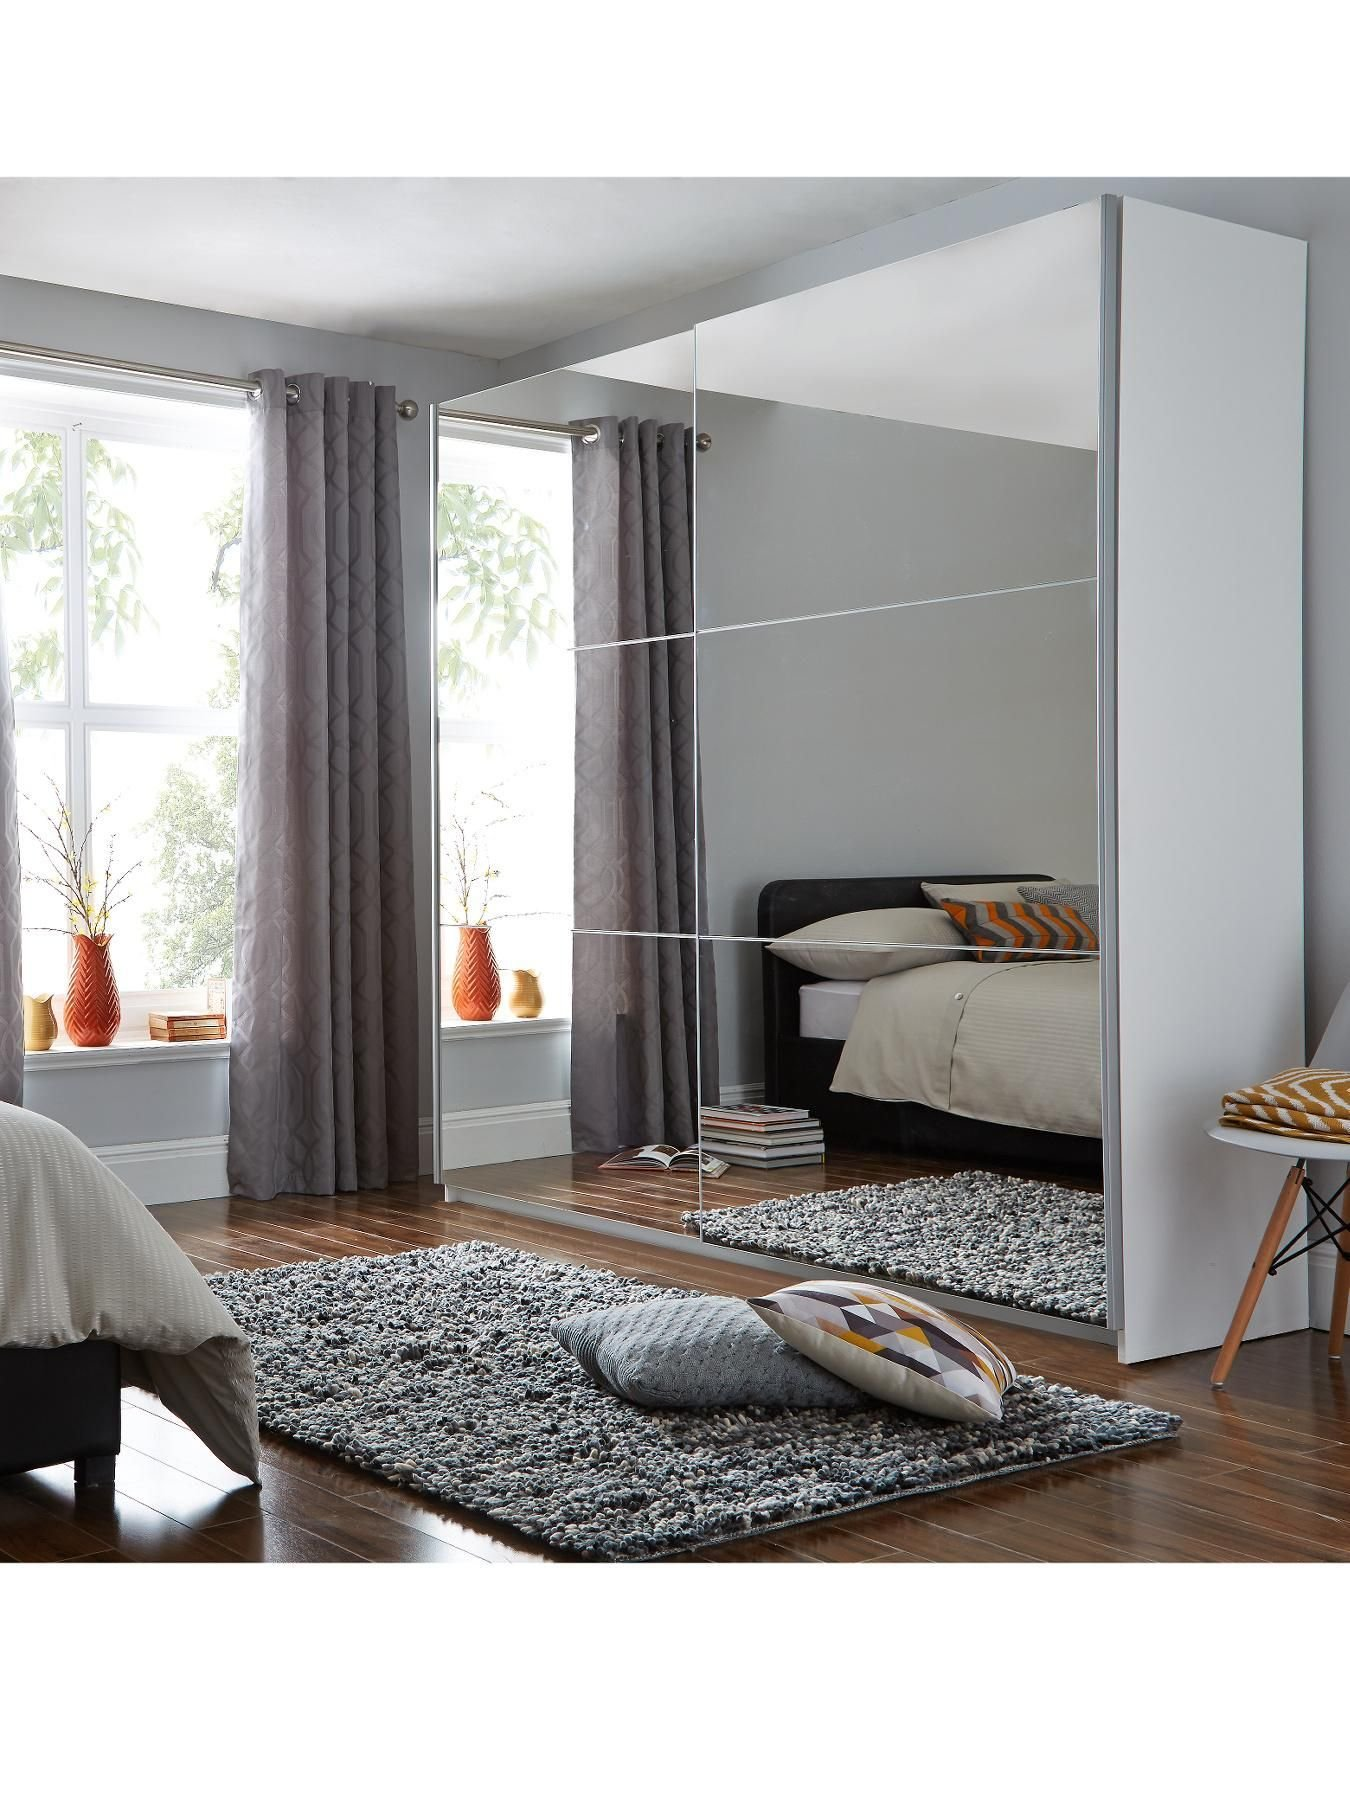 Best Universal Large Sliding Door Mirrored Wardrobe In 2019 With Pictures